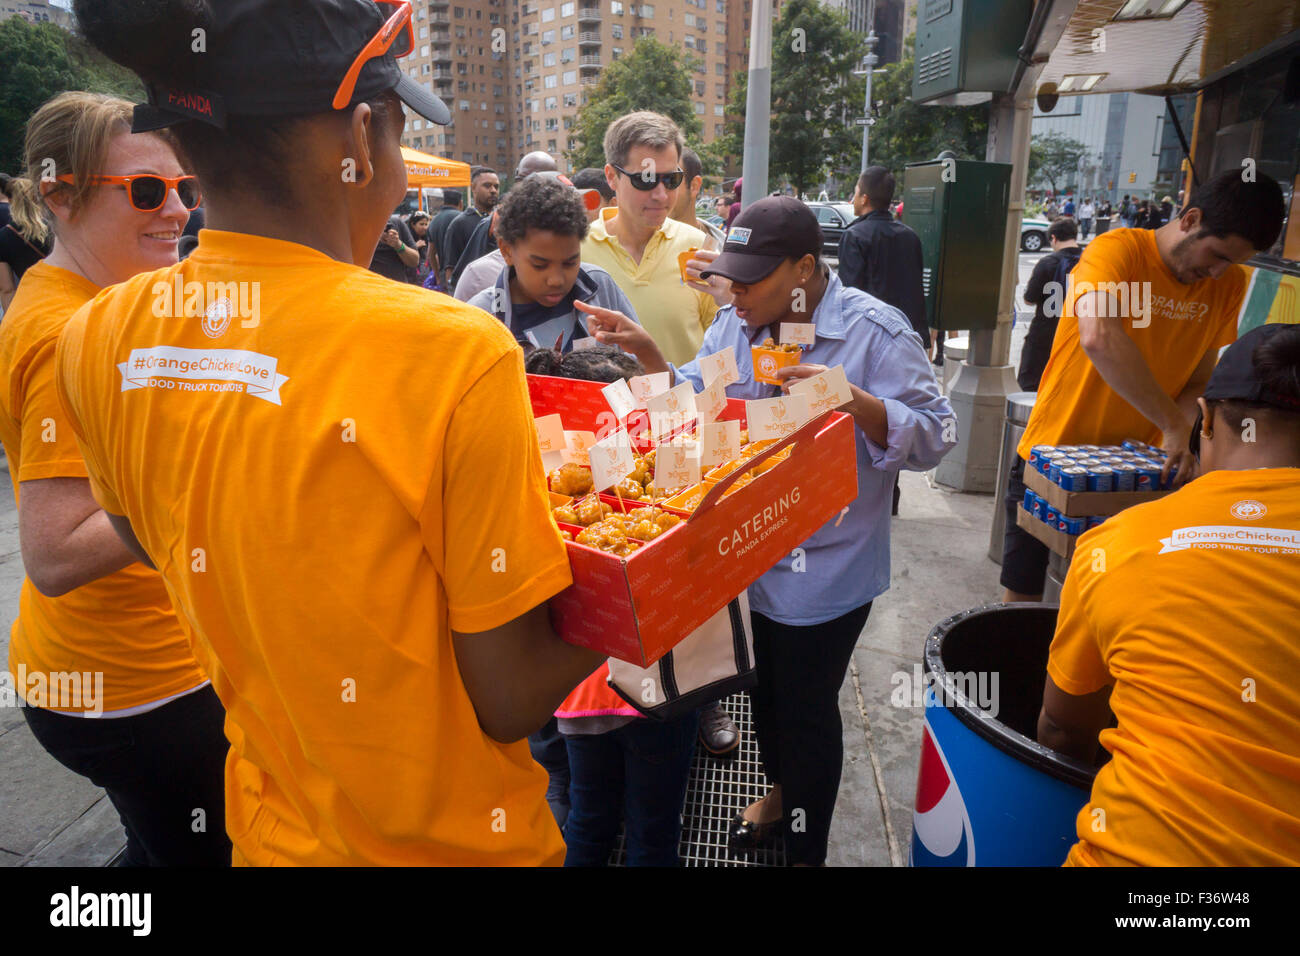 Hundreds eat samples of Panda Express' signature Orange Chicken at promotional event in Columbus Circle in New - Stock Image